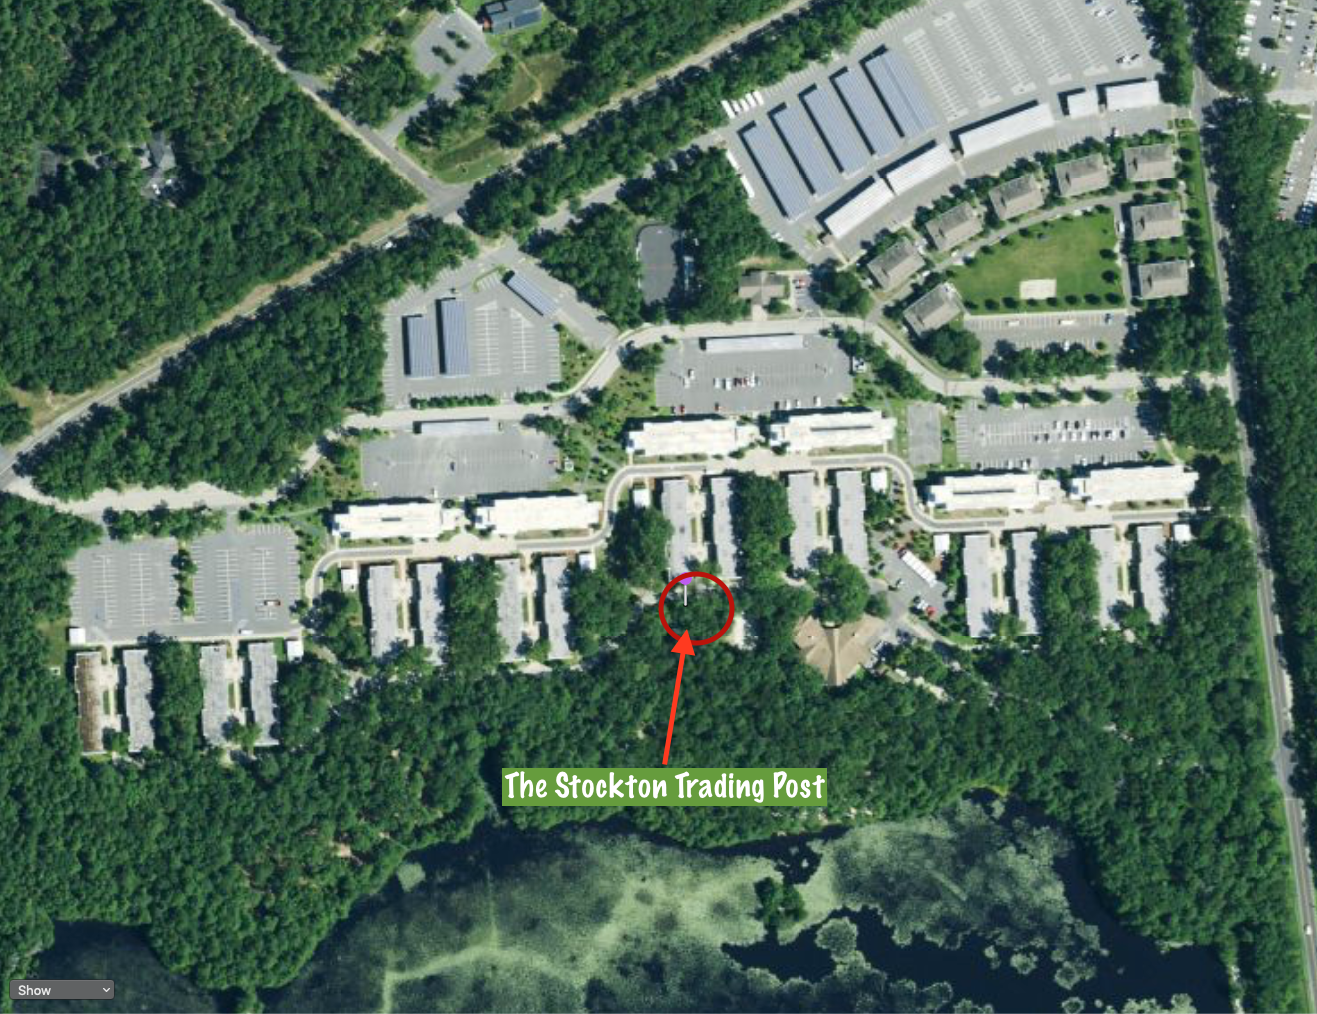 Map Showing Where the Trading Post is on the Stockton Campus